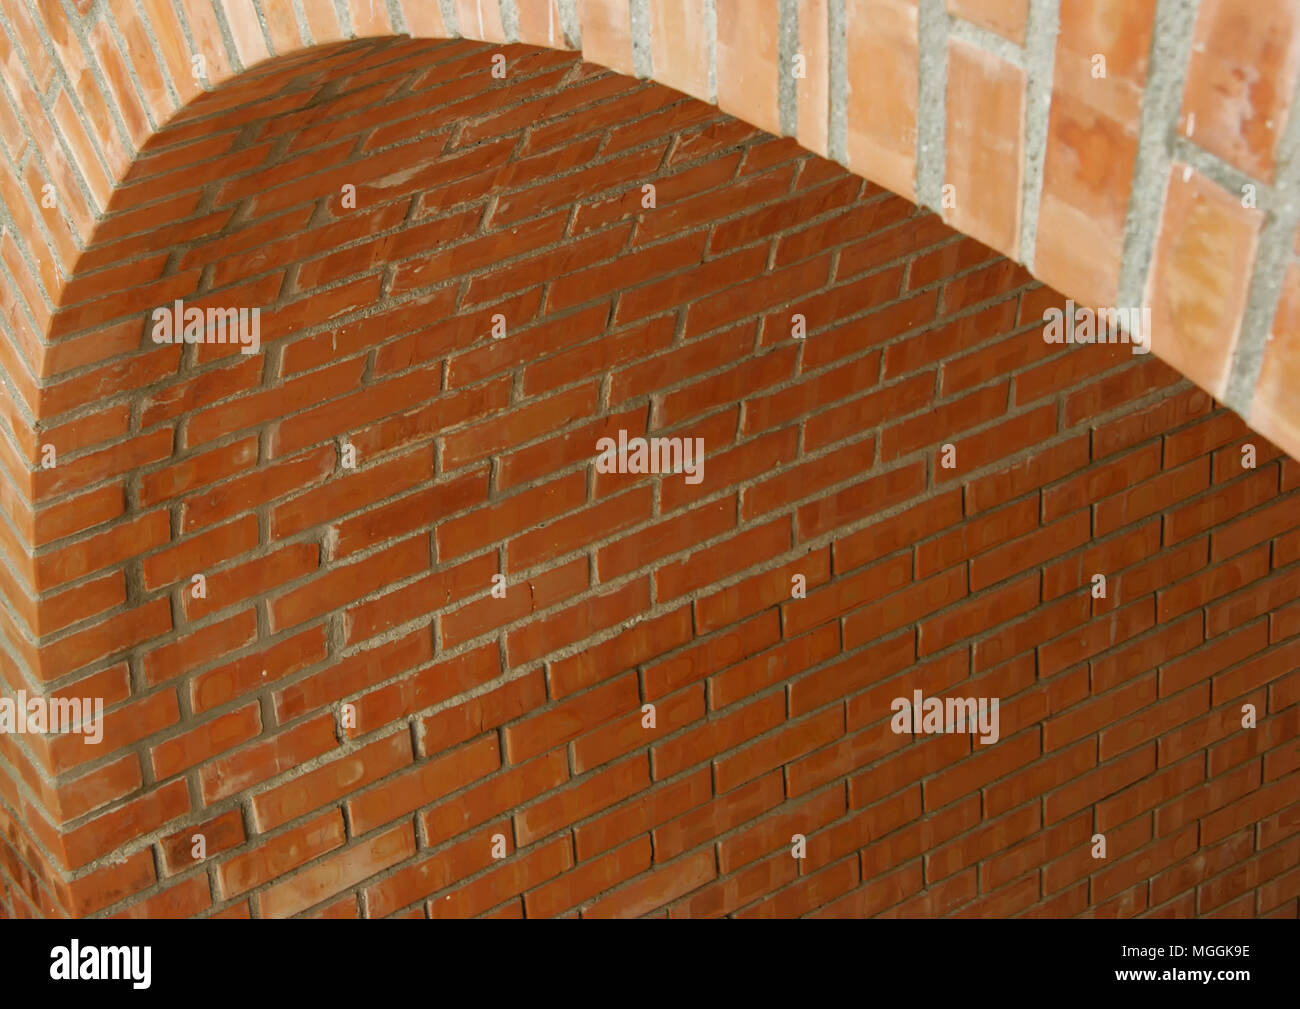 Arched brick passage - Stock Image